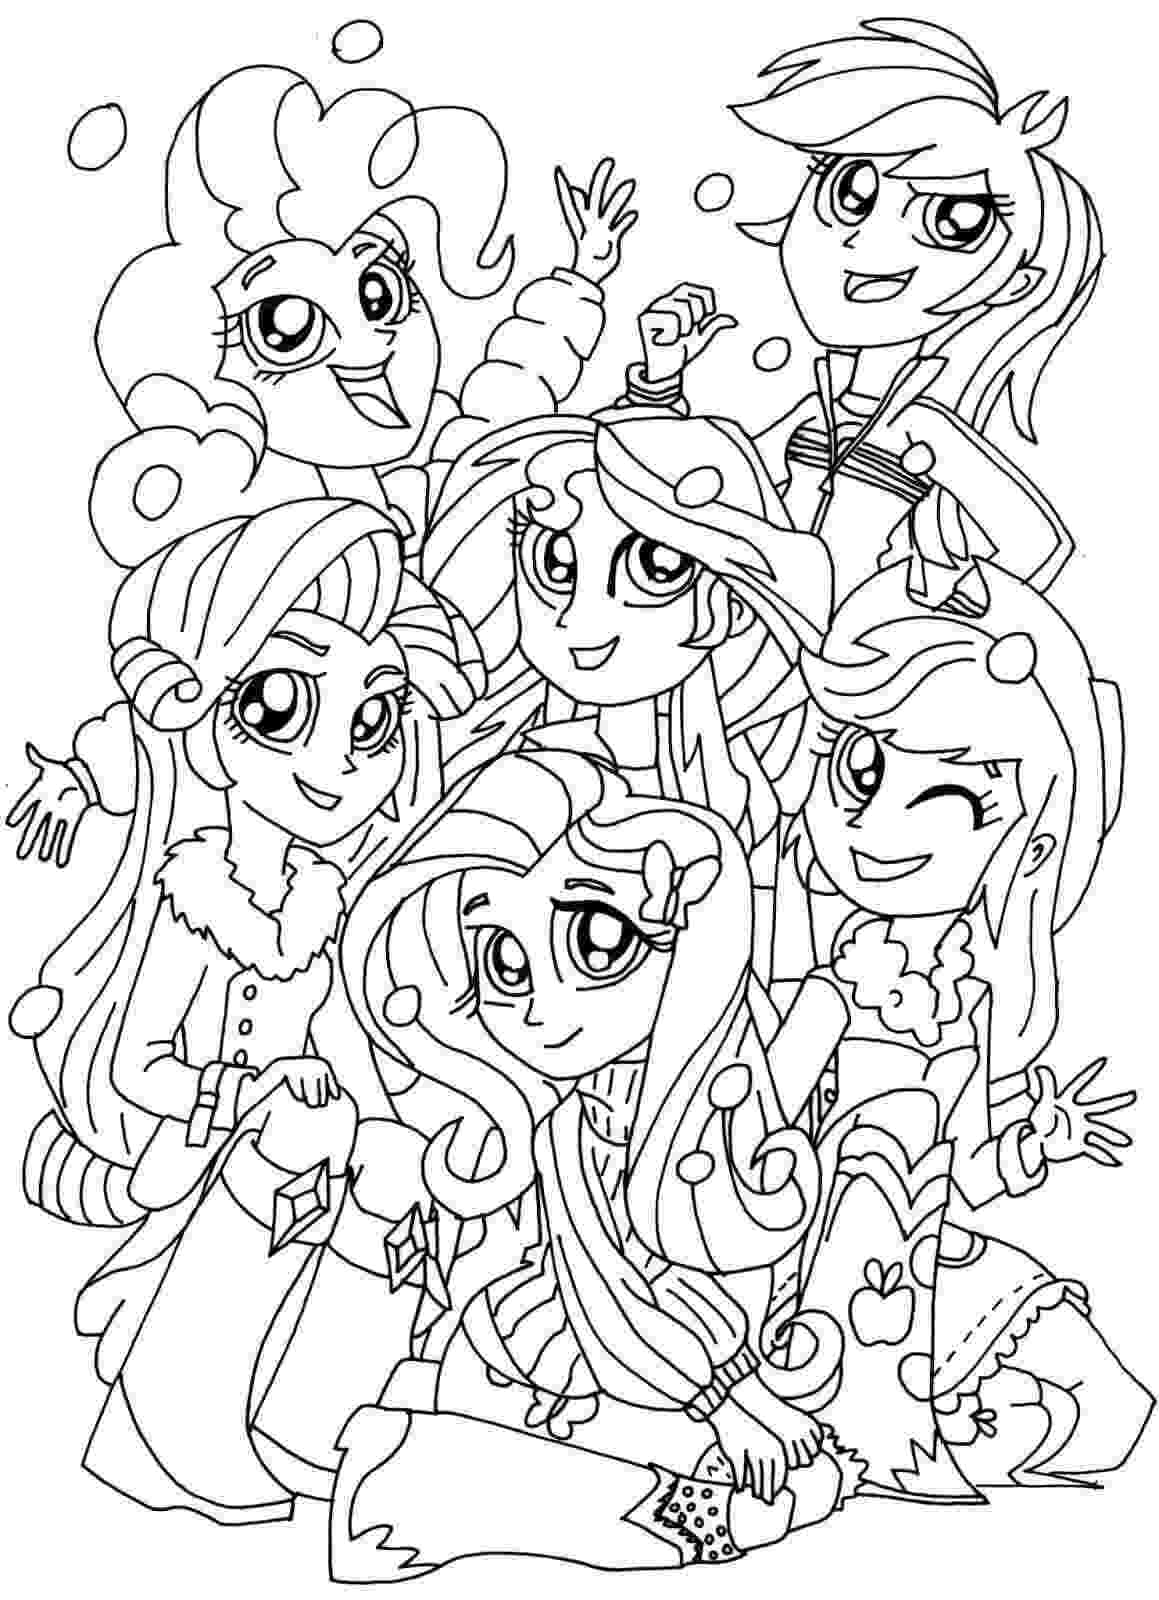 colering pages for girls fashionable girls coloring pages 1gif 15332076 colering girls for pages